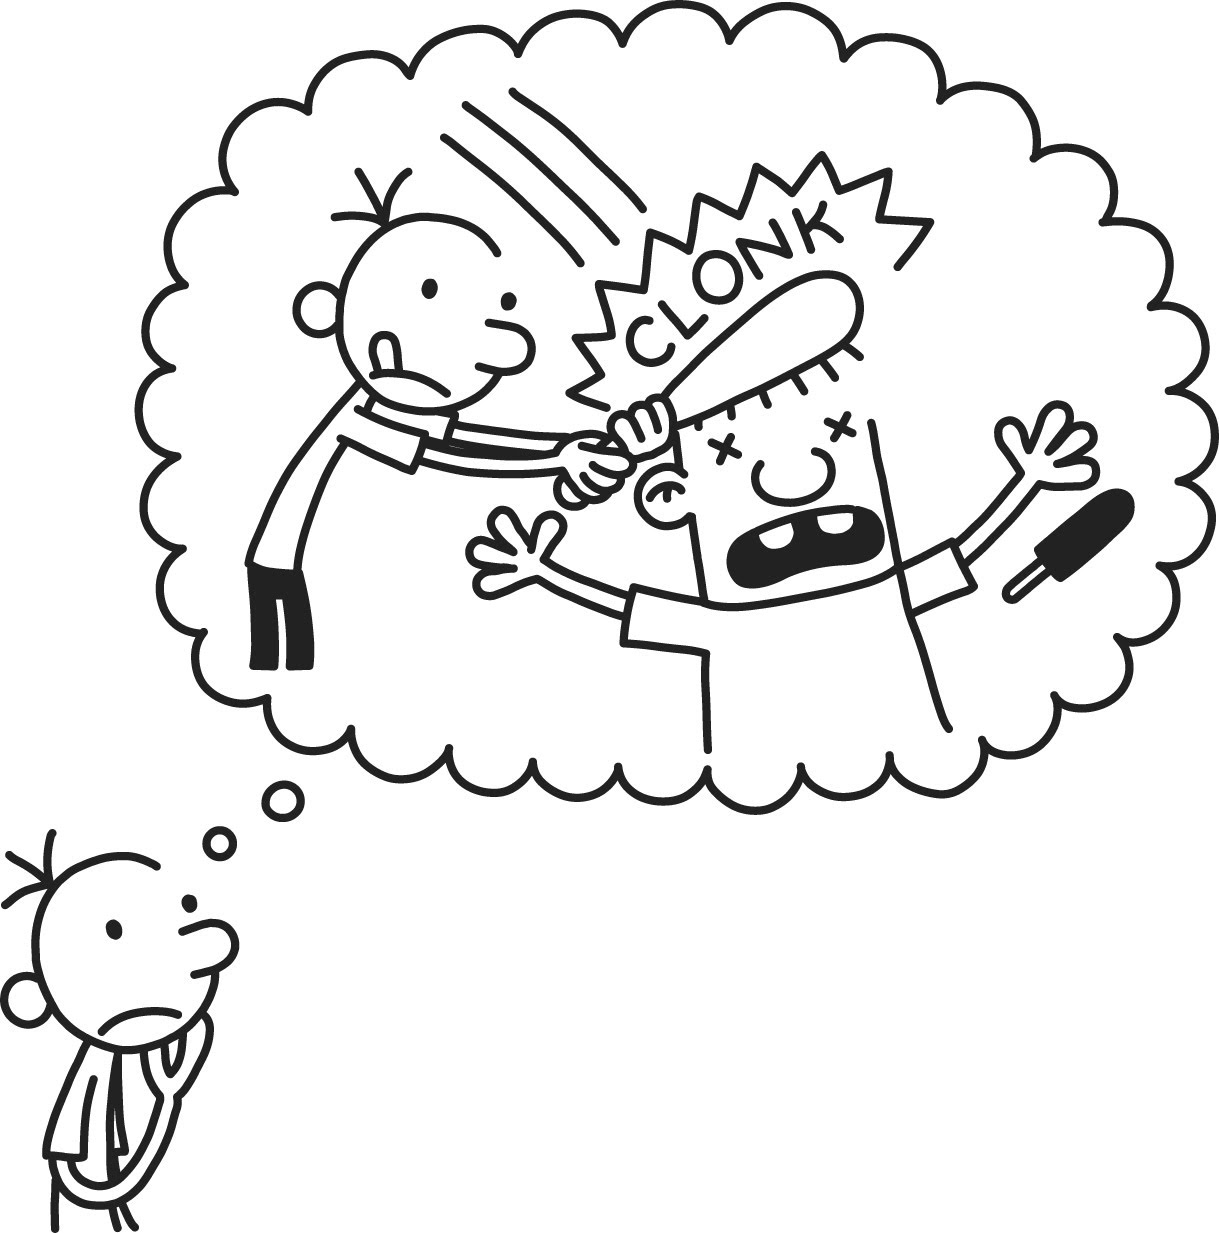 diary of a wimpy kid coloring pages diaryofawimpykid coloring pages free printable colouring coloring wimpy a diary pages of kid